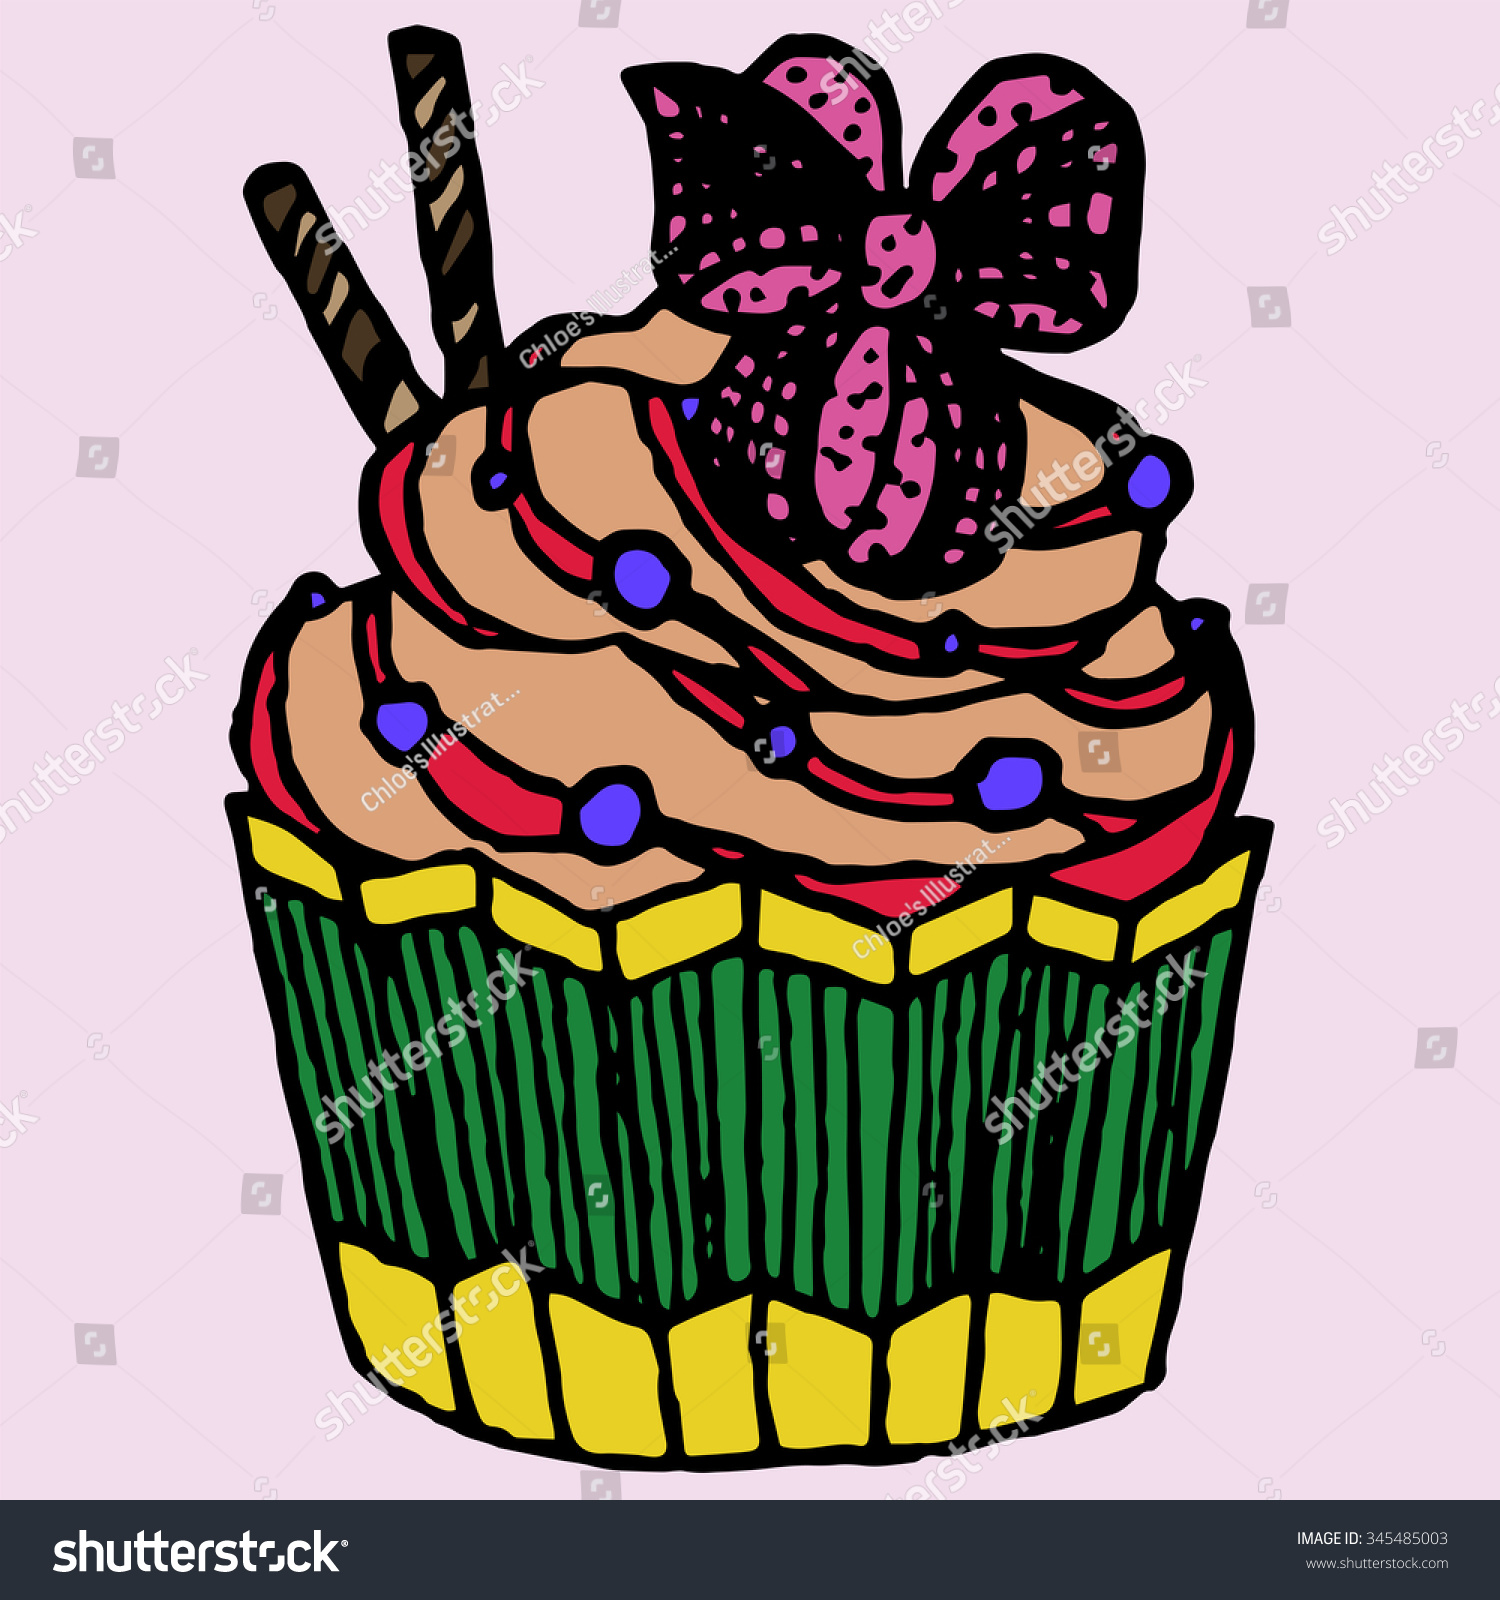 stock-photo-cute-colorful-cupcake-with-a